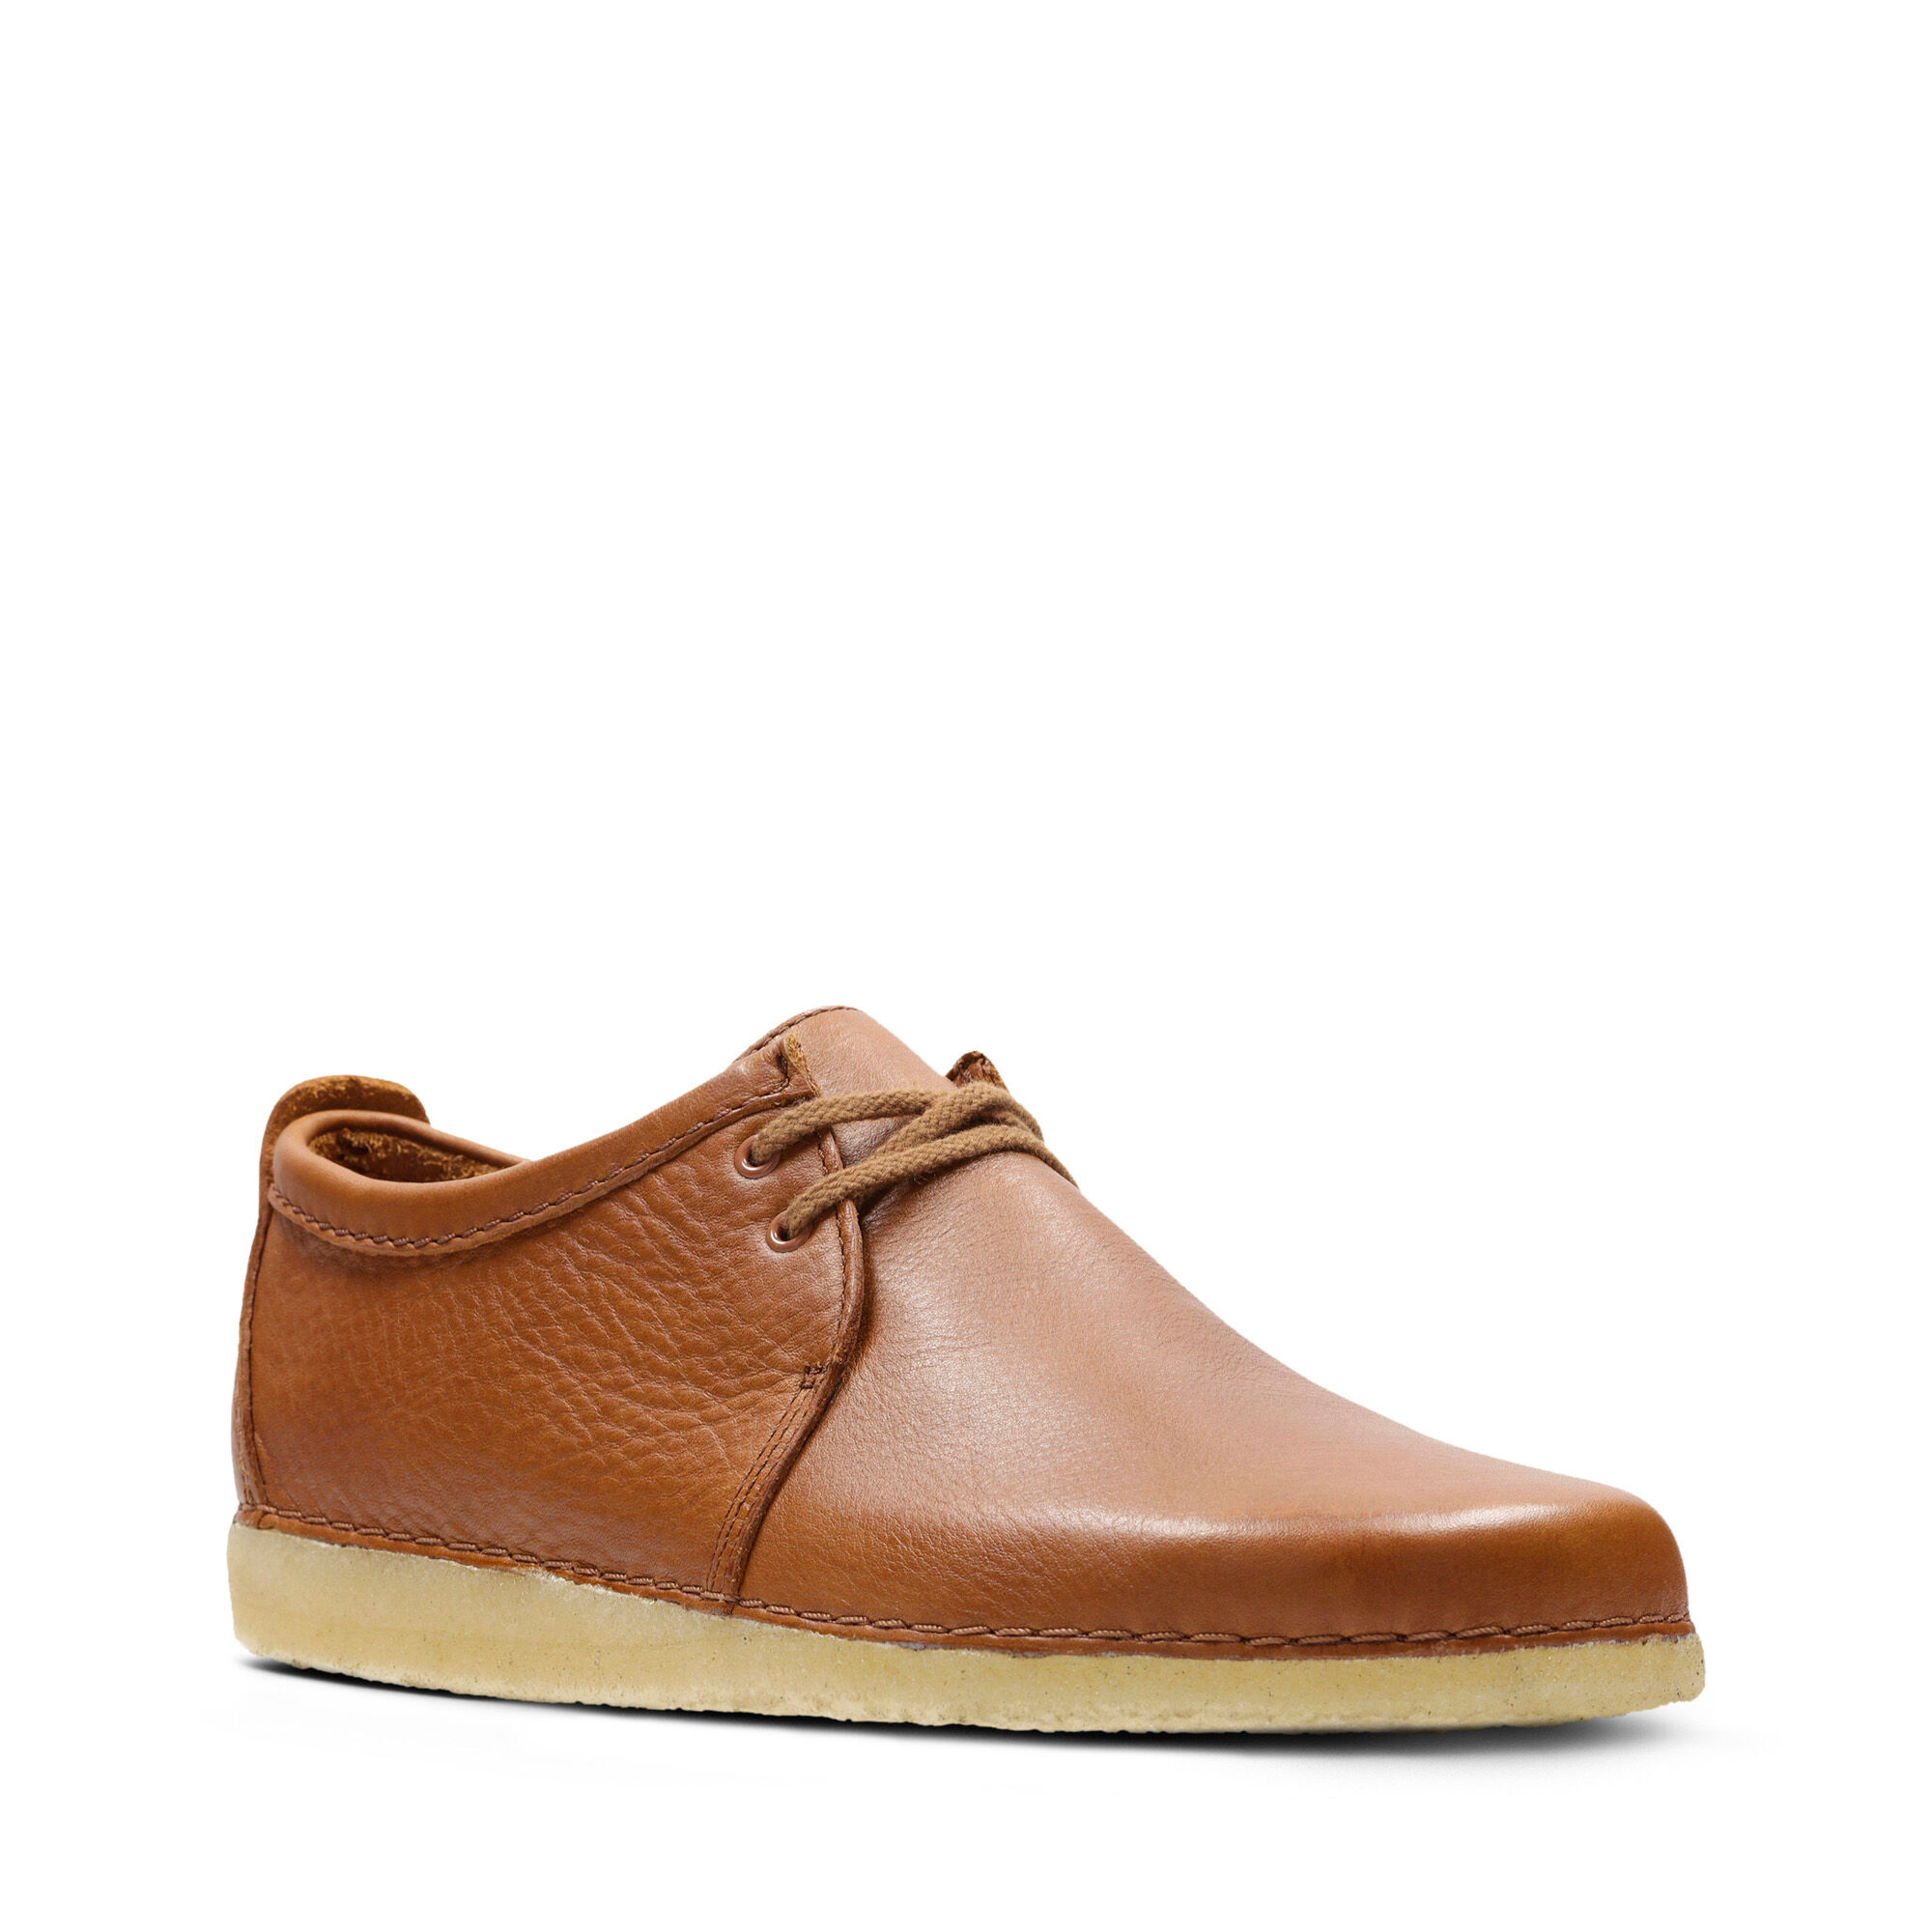 Clarks Ashton Leather Shoes in